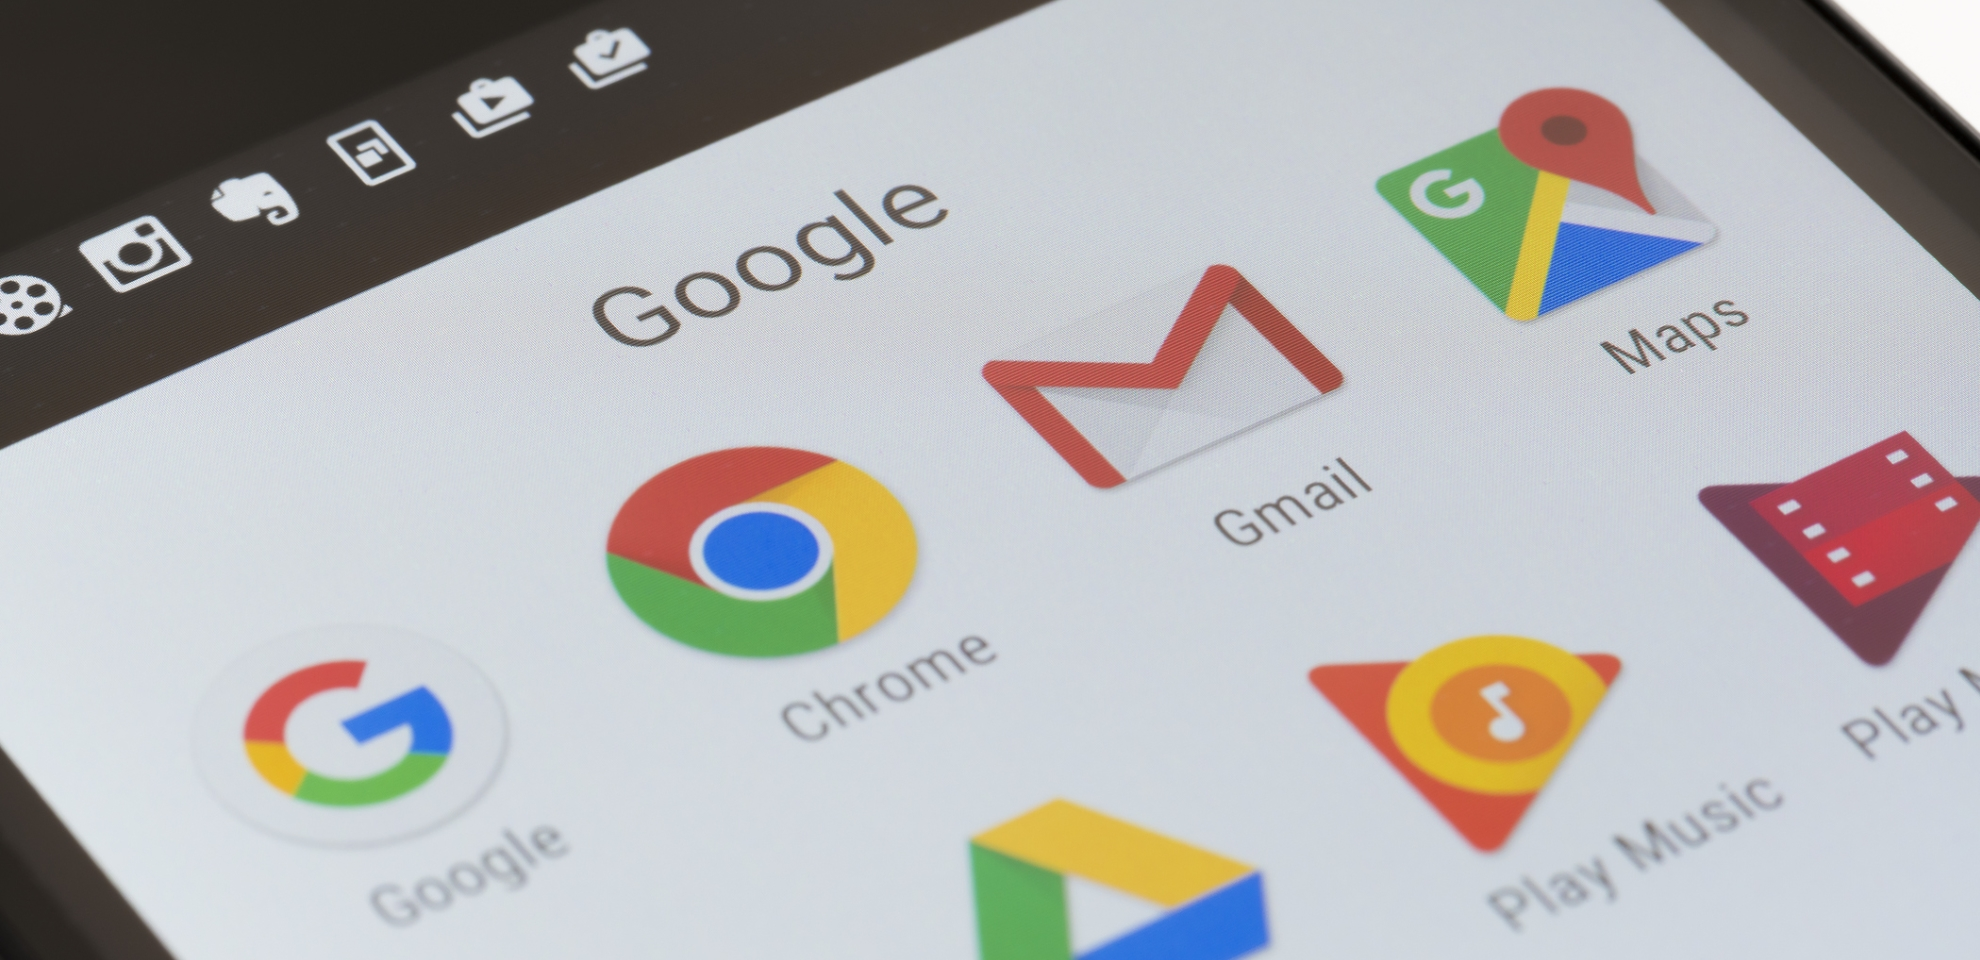 Why Businesses Should Use Google Apps: Part 5 – Google+ Hangouts